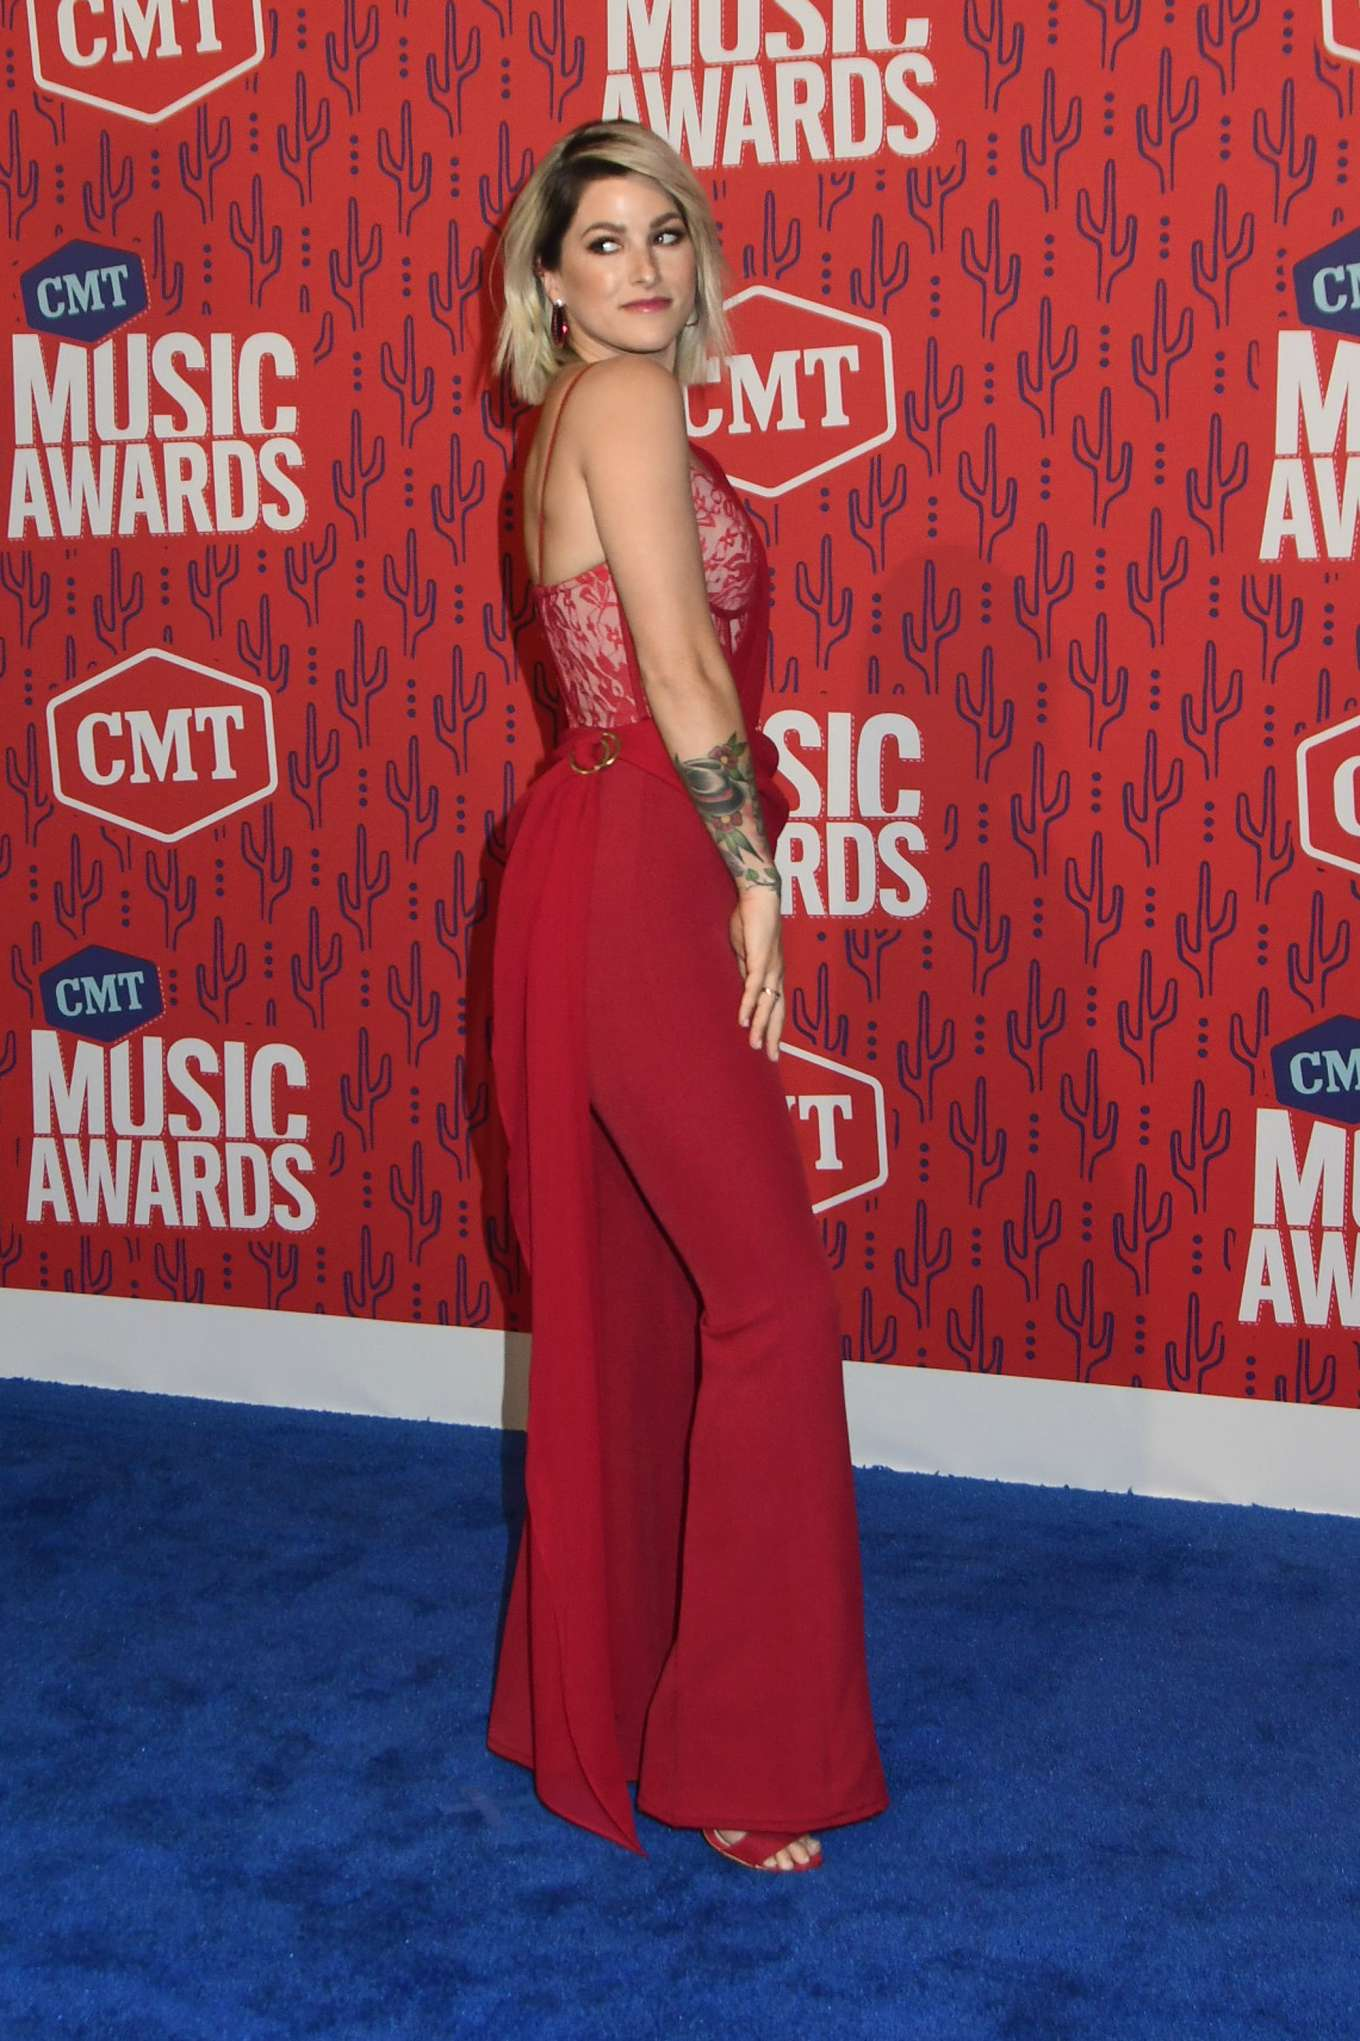 Cassadee Pope 2019 : Cassadee Pope: 2019 CMT Music Awards-23